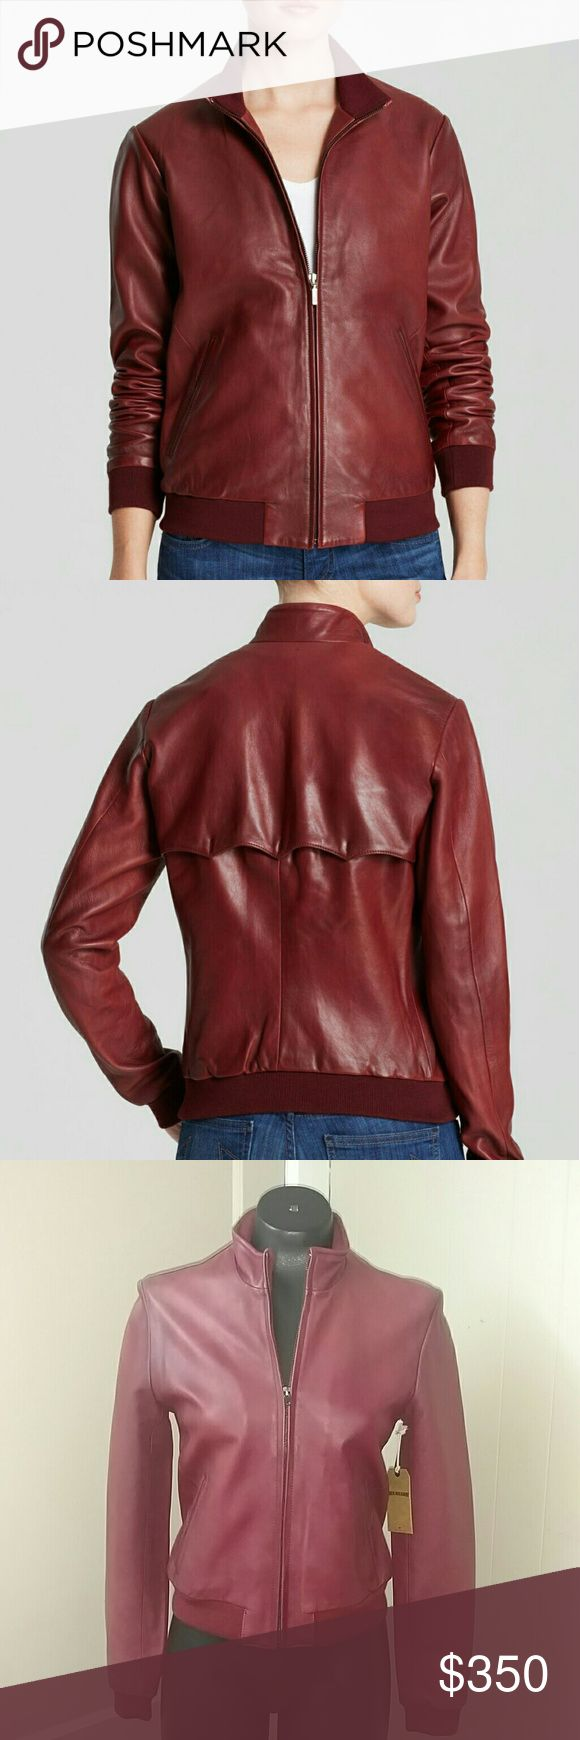 True Religion NWT liv leather jacket. 100% Soft sheep leather fitted bomber jacket. Bordeaux red color. Two front pockets. True Religion Jackets & Coats